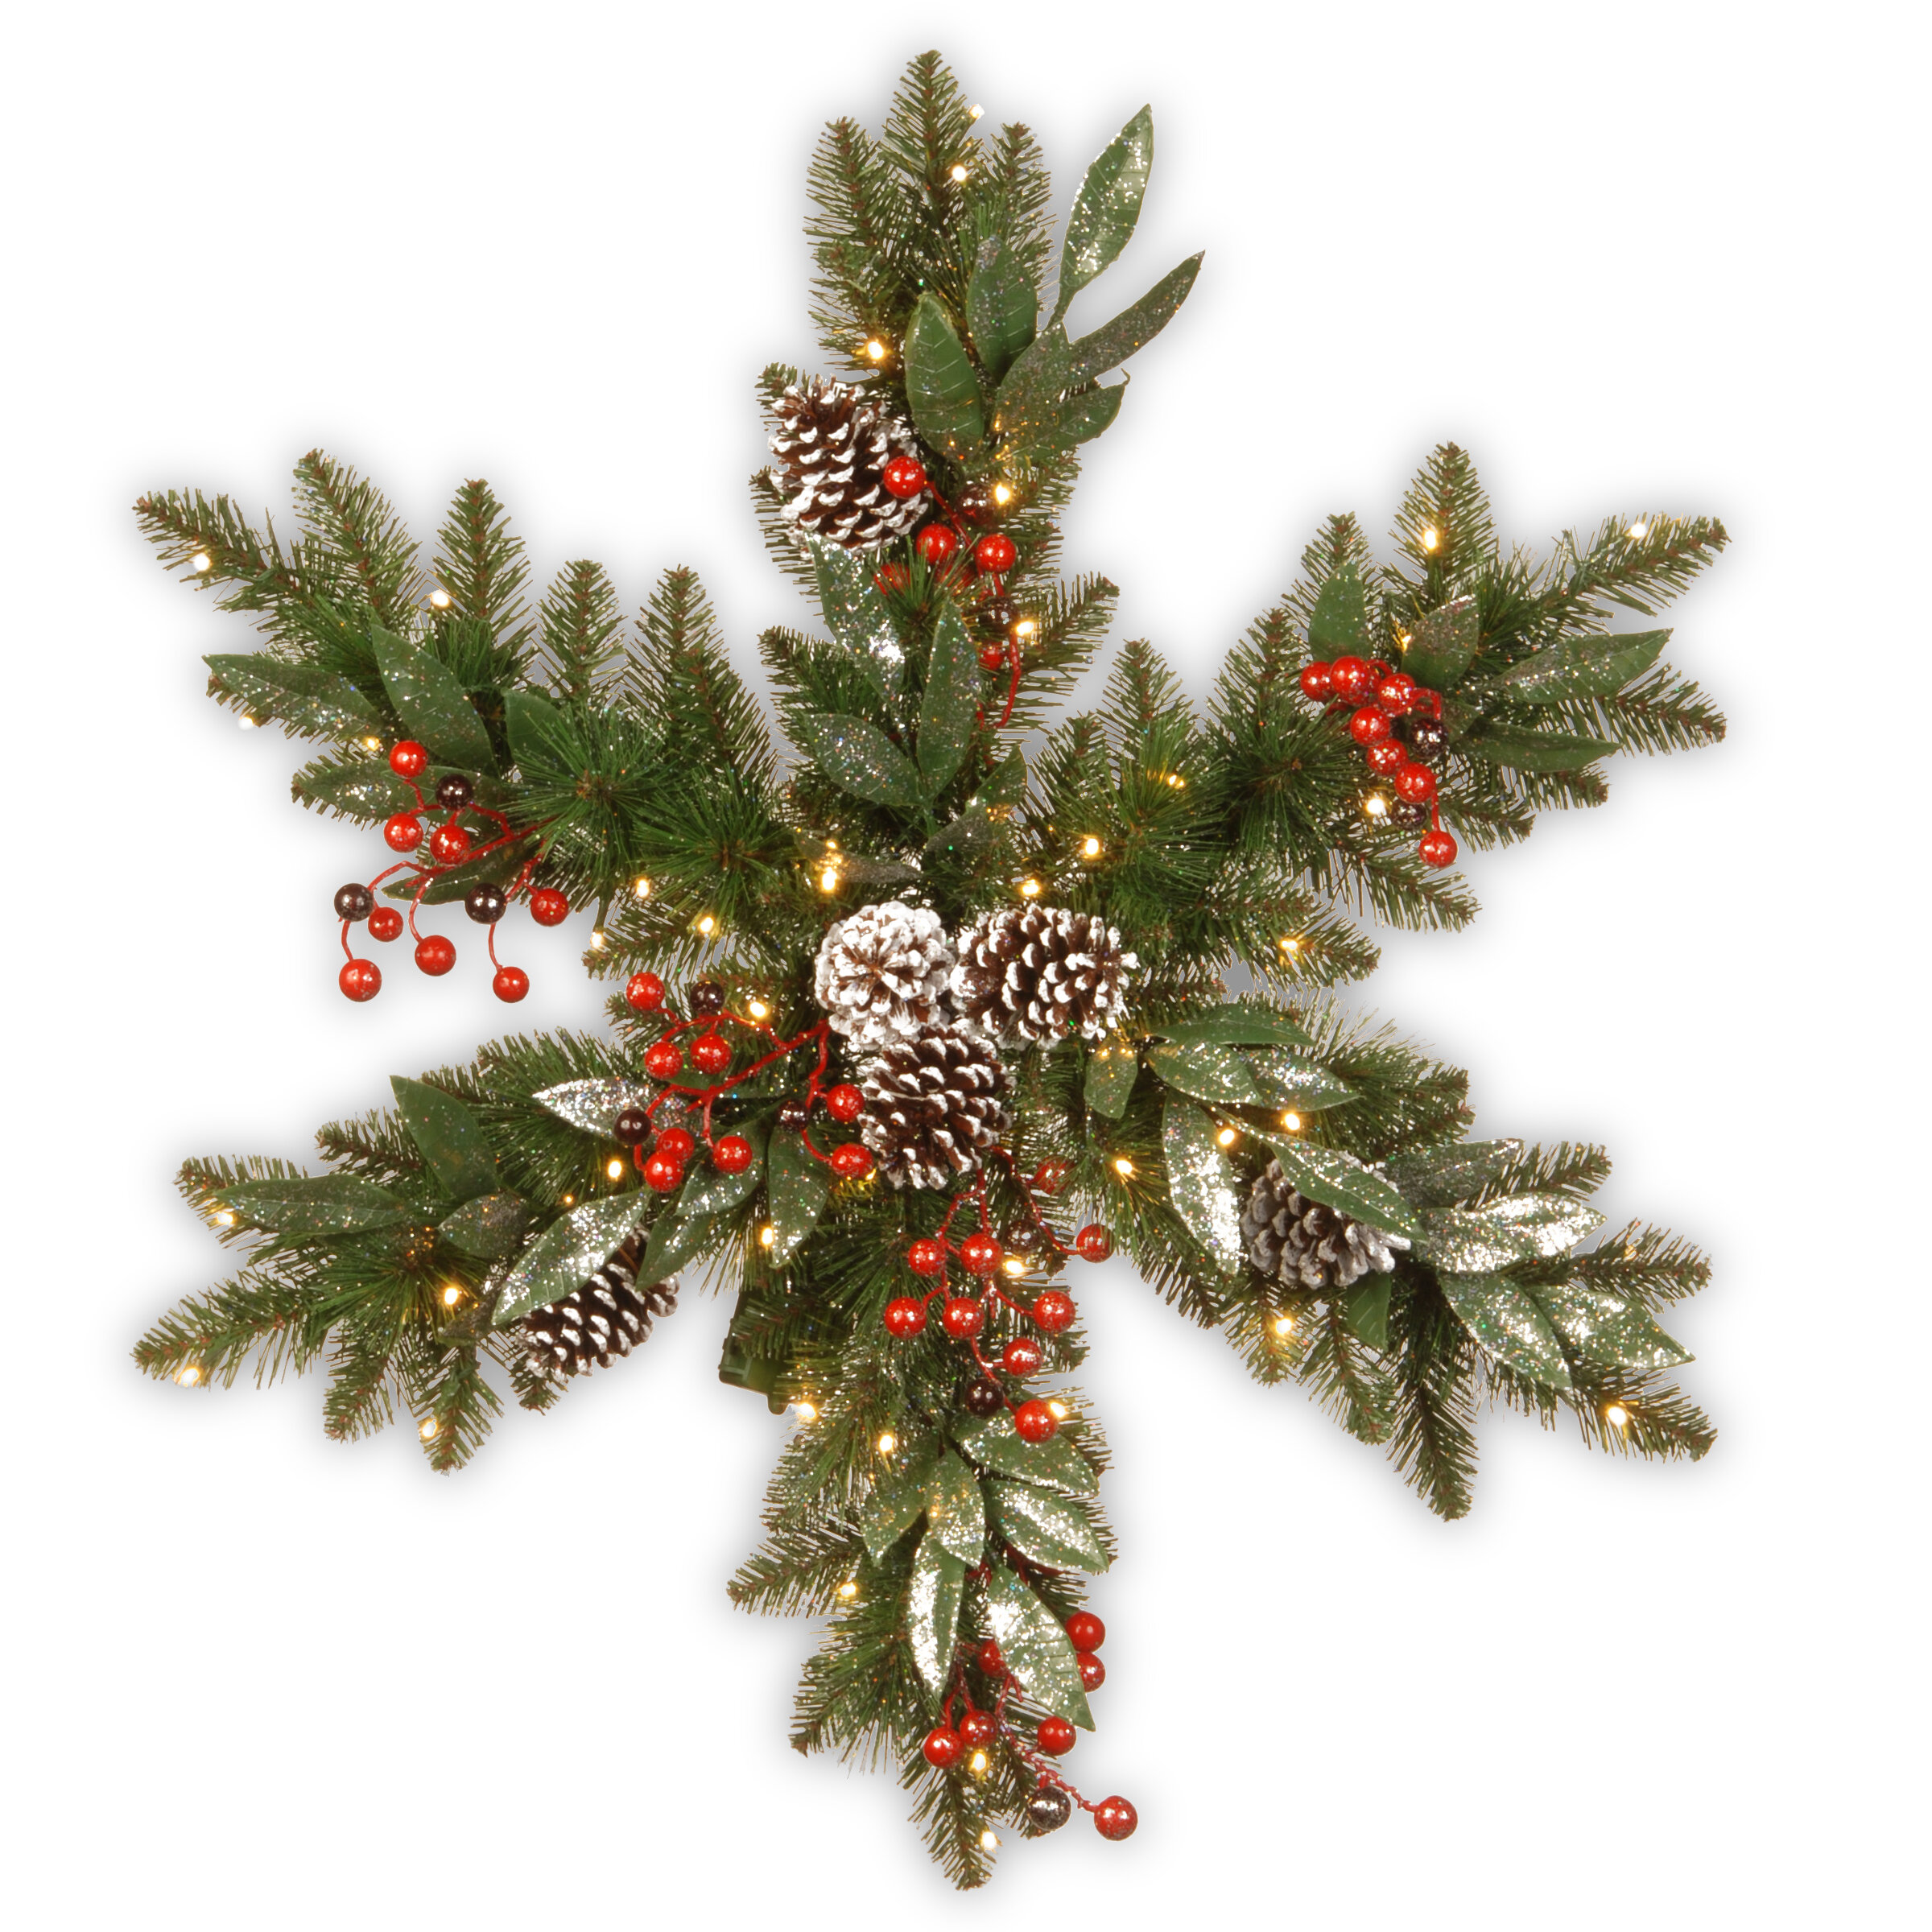 Acorns Pinecones Extra Large Christmas Ornaments You Ll Love In 2021 Wayfair